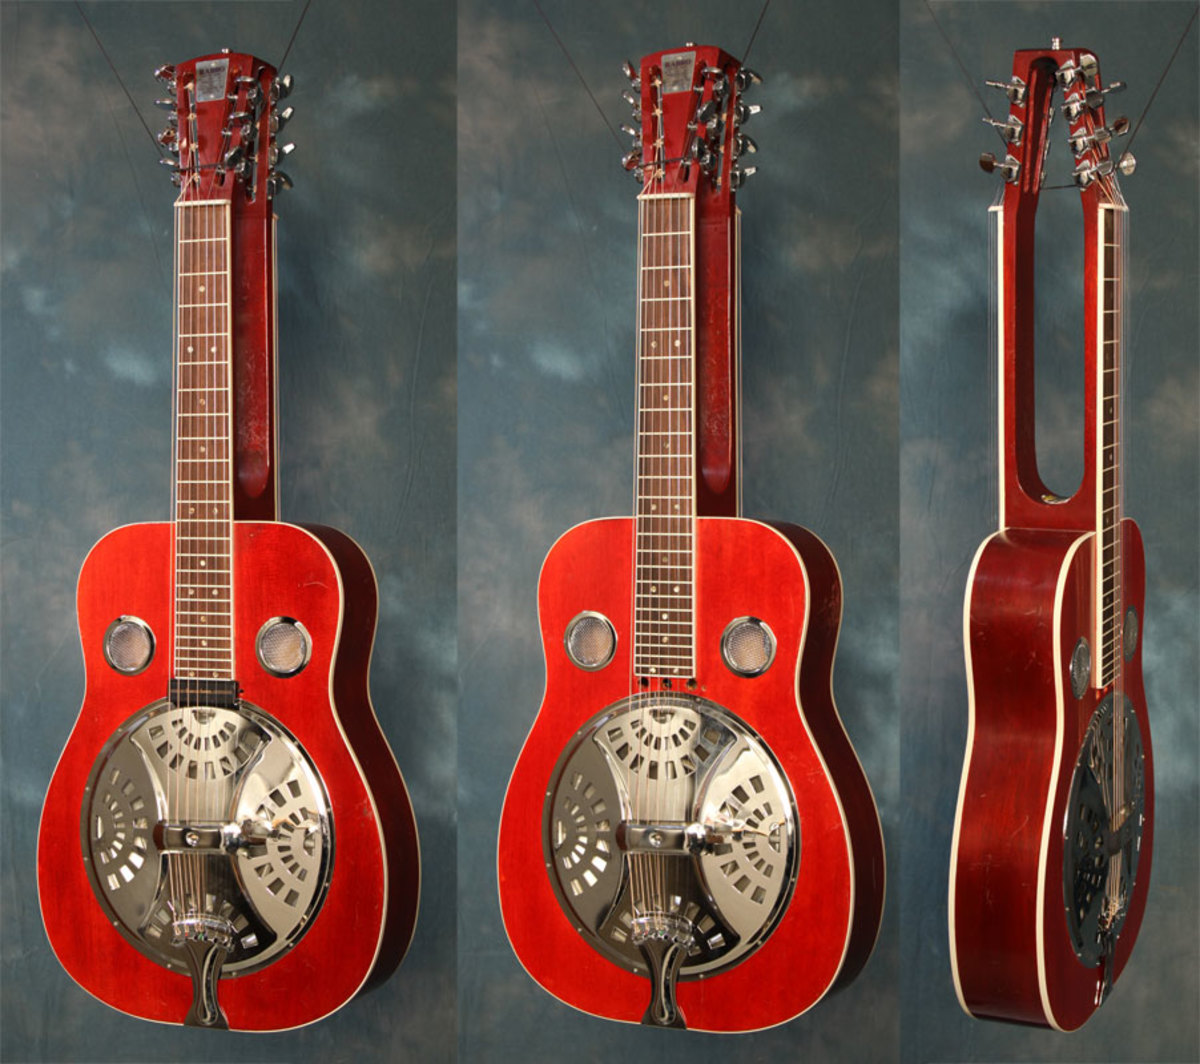 """RAYBRO"" RESONATOR GUITAR (DOBRO STYLE) HAND MADE BY MY UNCLE RAY WATKINS"